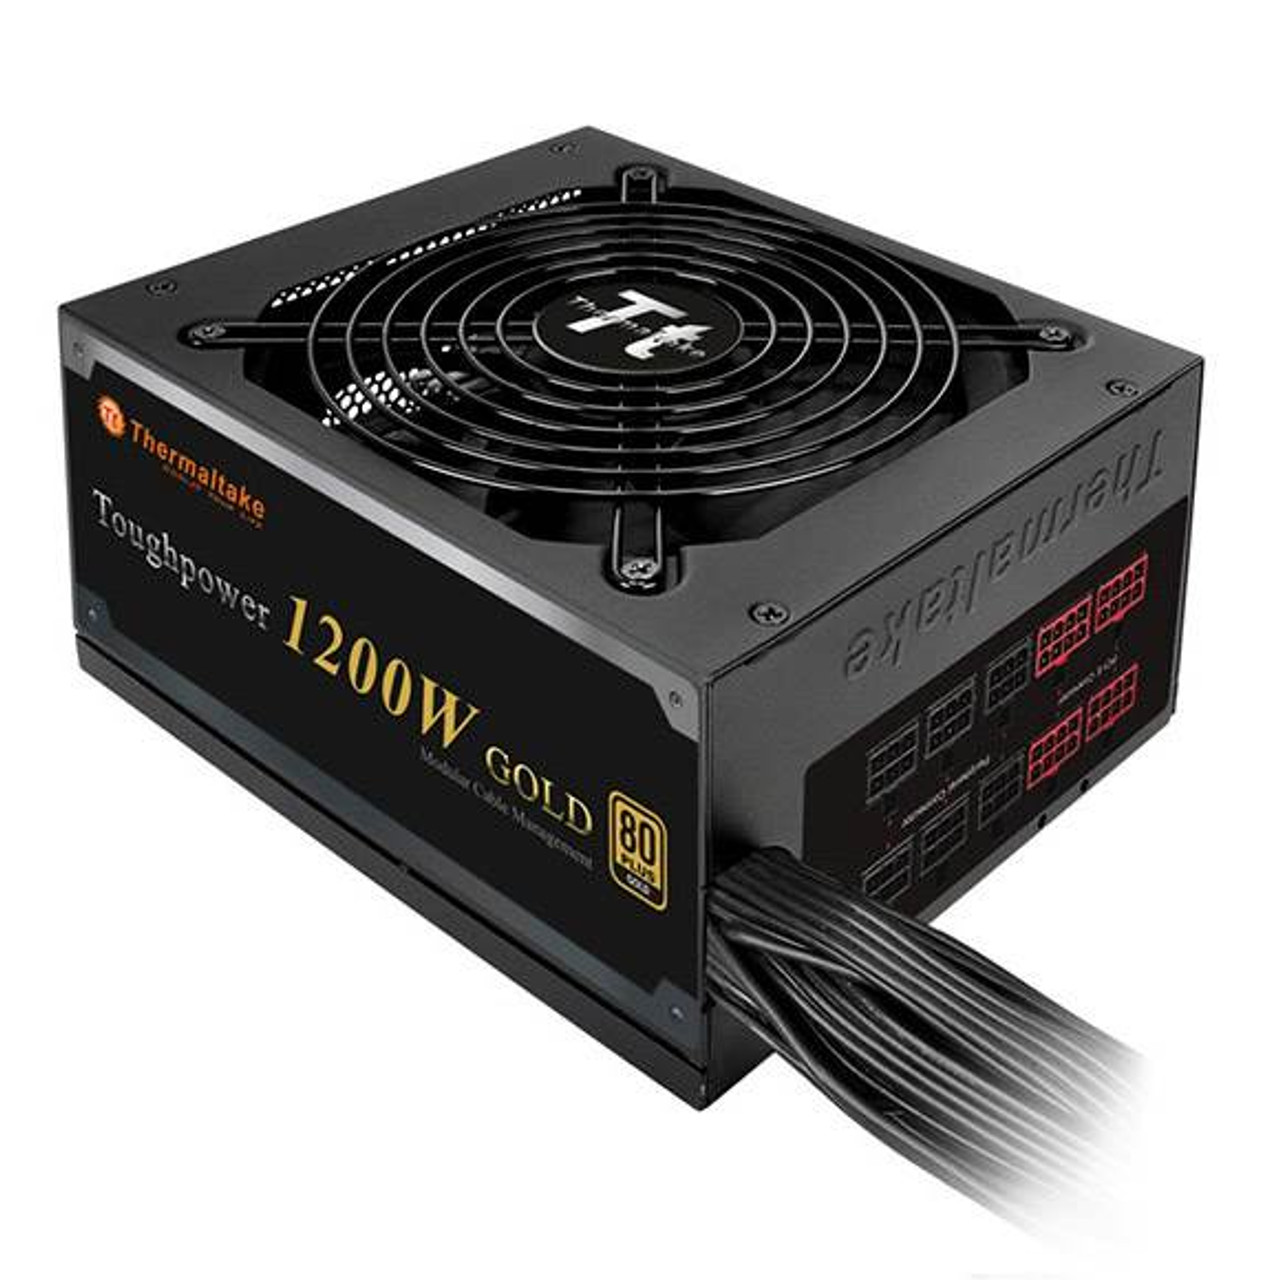 Image for Thermaltake Toughpower GOLD 1200W Modular Power Supply CX Computer Superstore